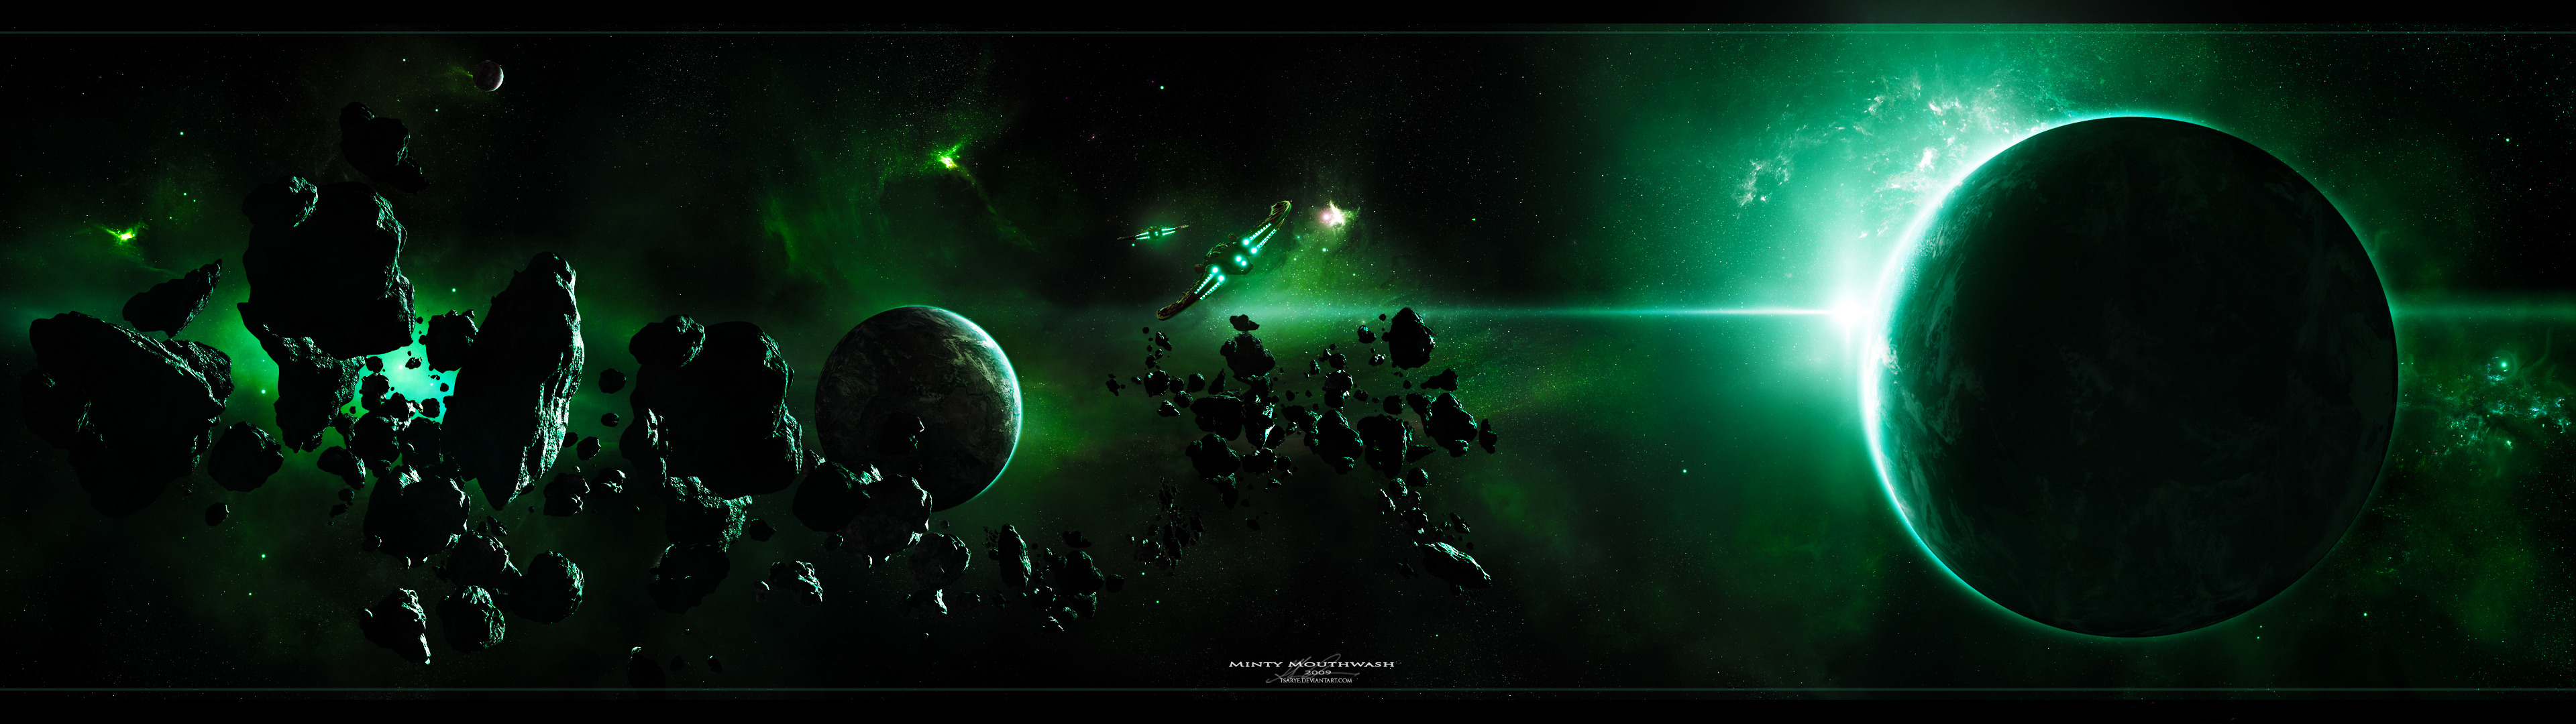 Download Wallpaper Nebula Planet Ships Asteroids Section Space In Resolution 3840x1080